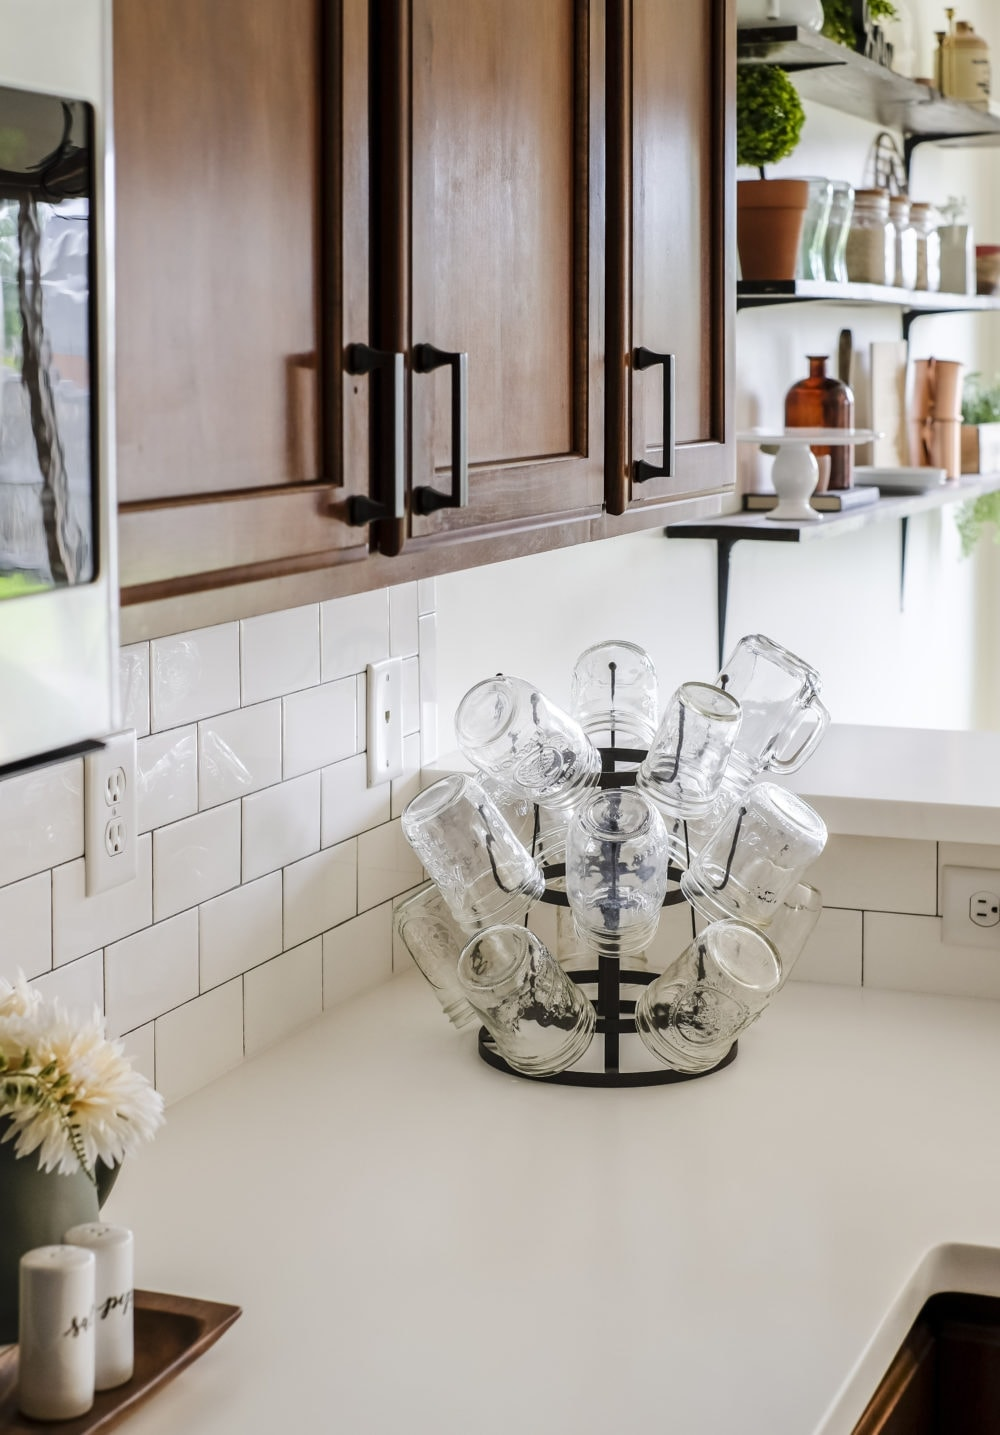 white solid surface countertops with mason jar glasses on a cup holder